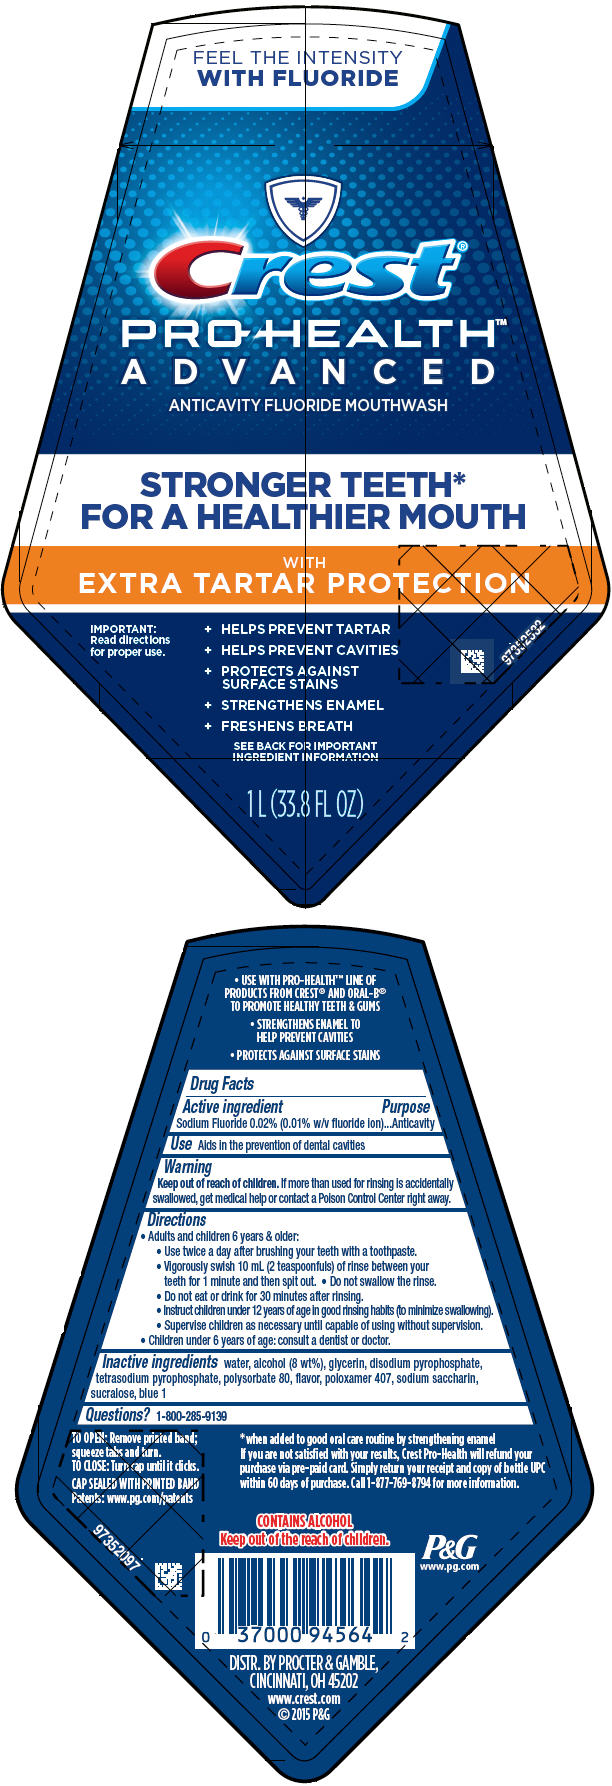 Crest Pro-health Advanced With Extra Tartar Protection (Sodium Fluoride) Rinse [Procter & Gamble Manufacturing Company]